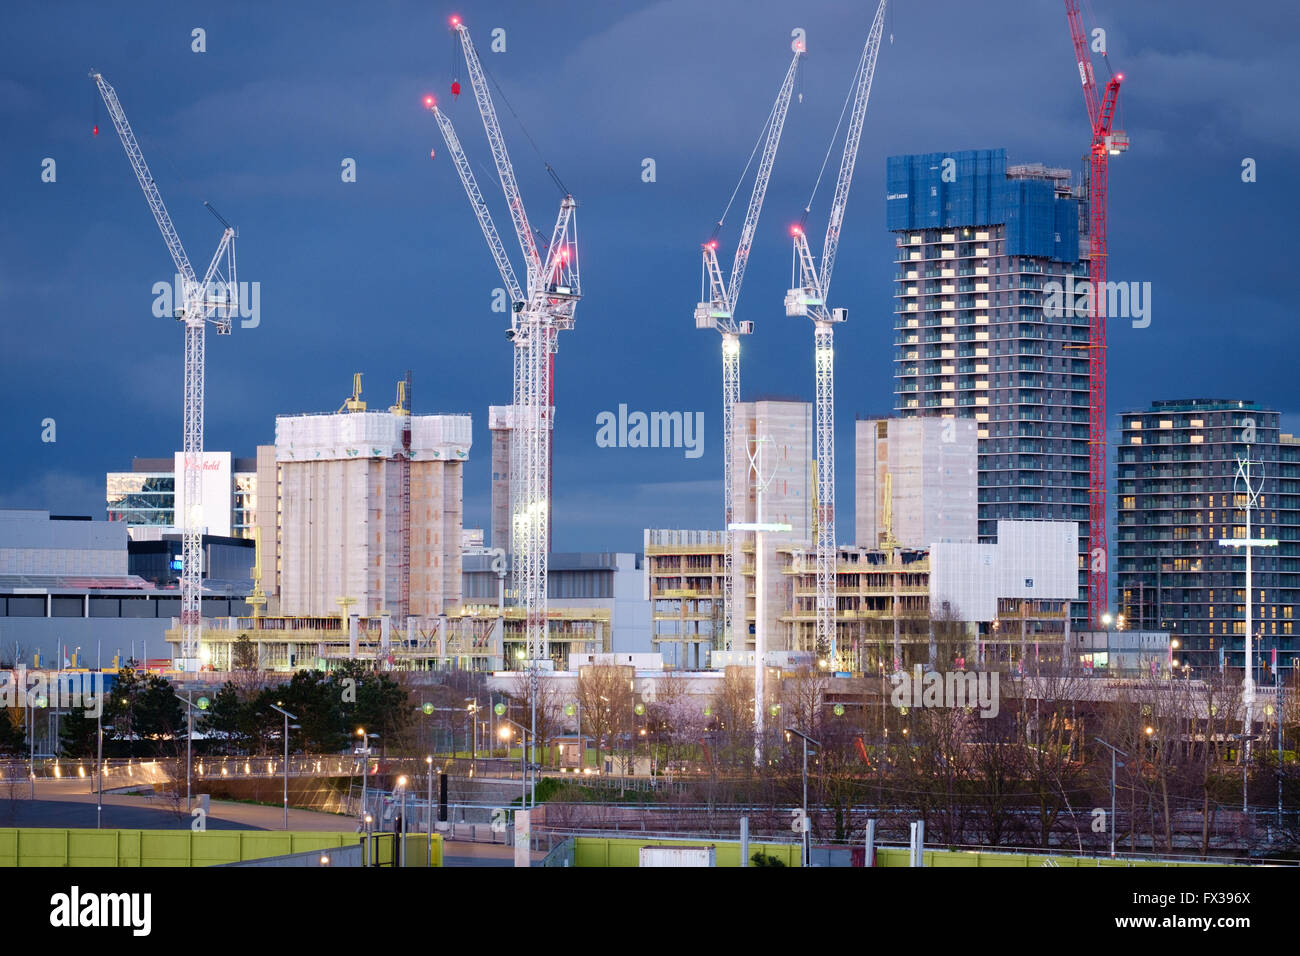 New skyscrapers in the International Quarter of the Queen Elizabeth Olympic Park stand out against a stormy twilight - Stock Image